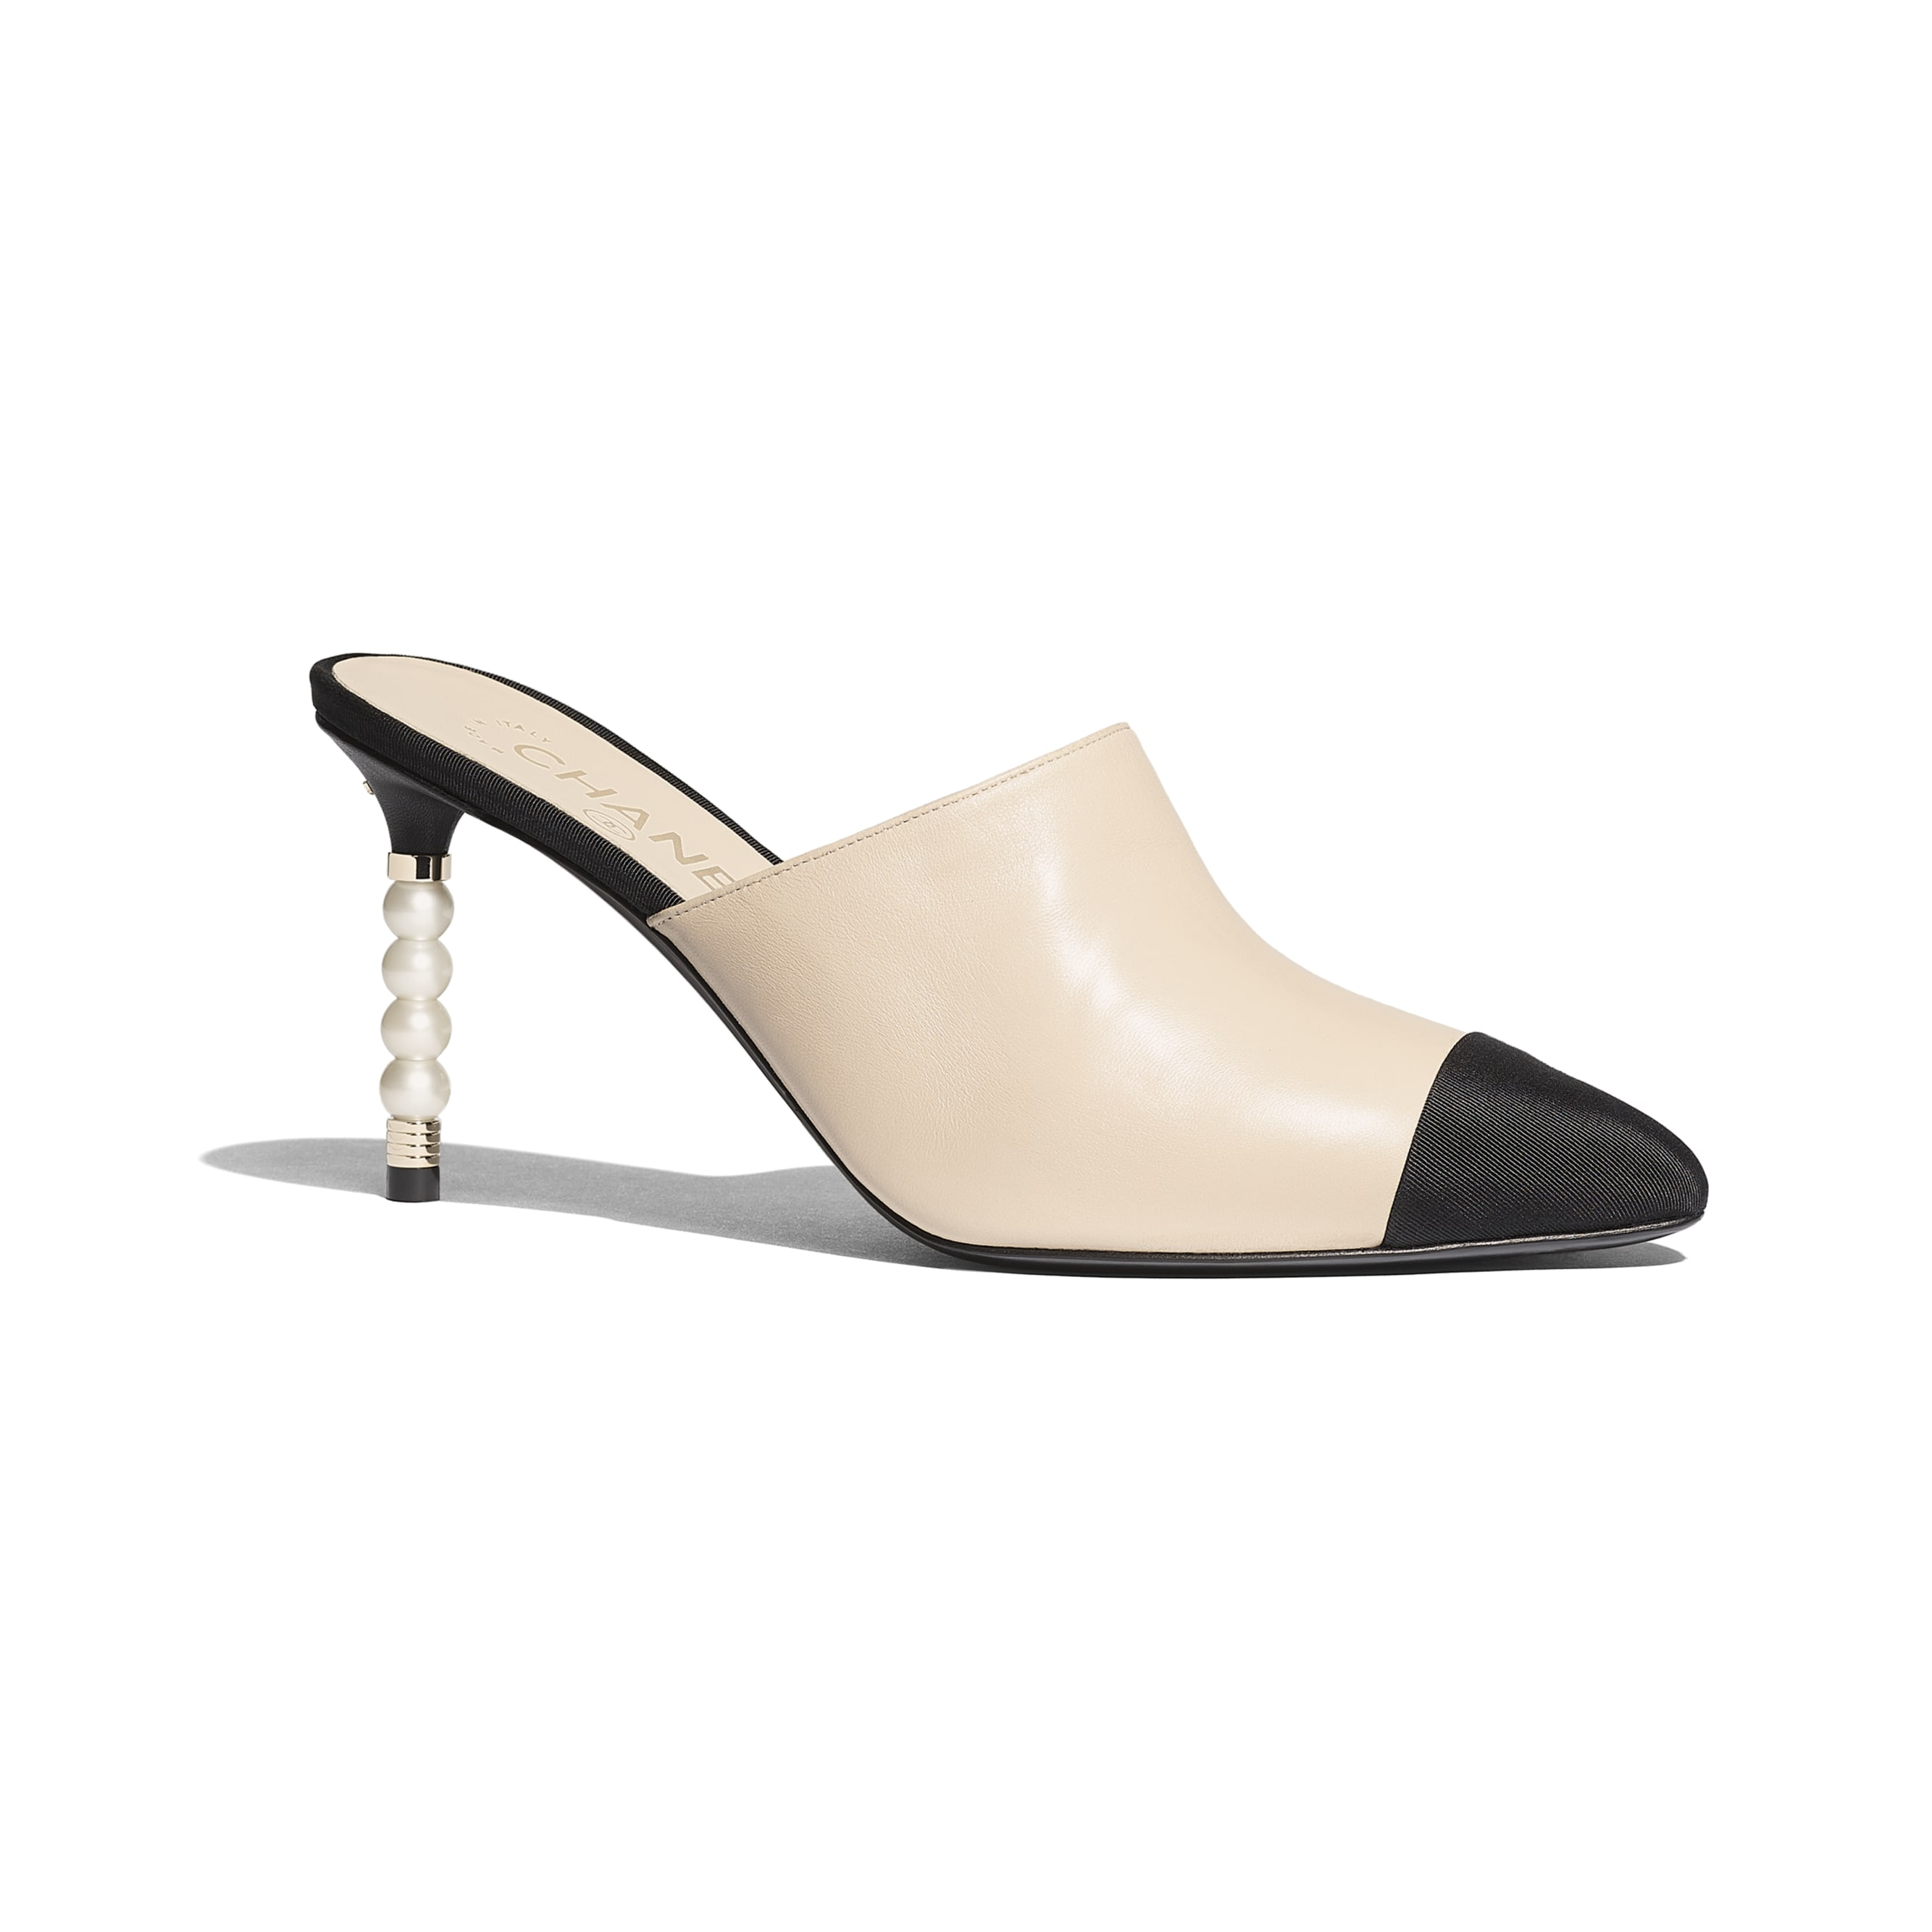 Mules - Beige & Black - Lambskin & Grosgrain - Default view - see standard sized version